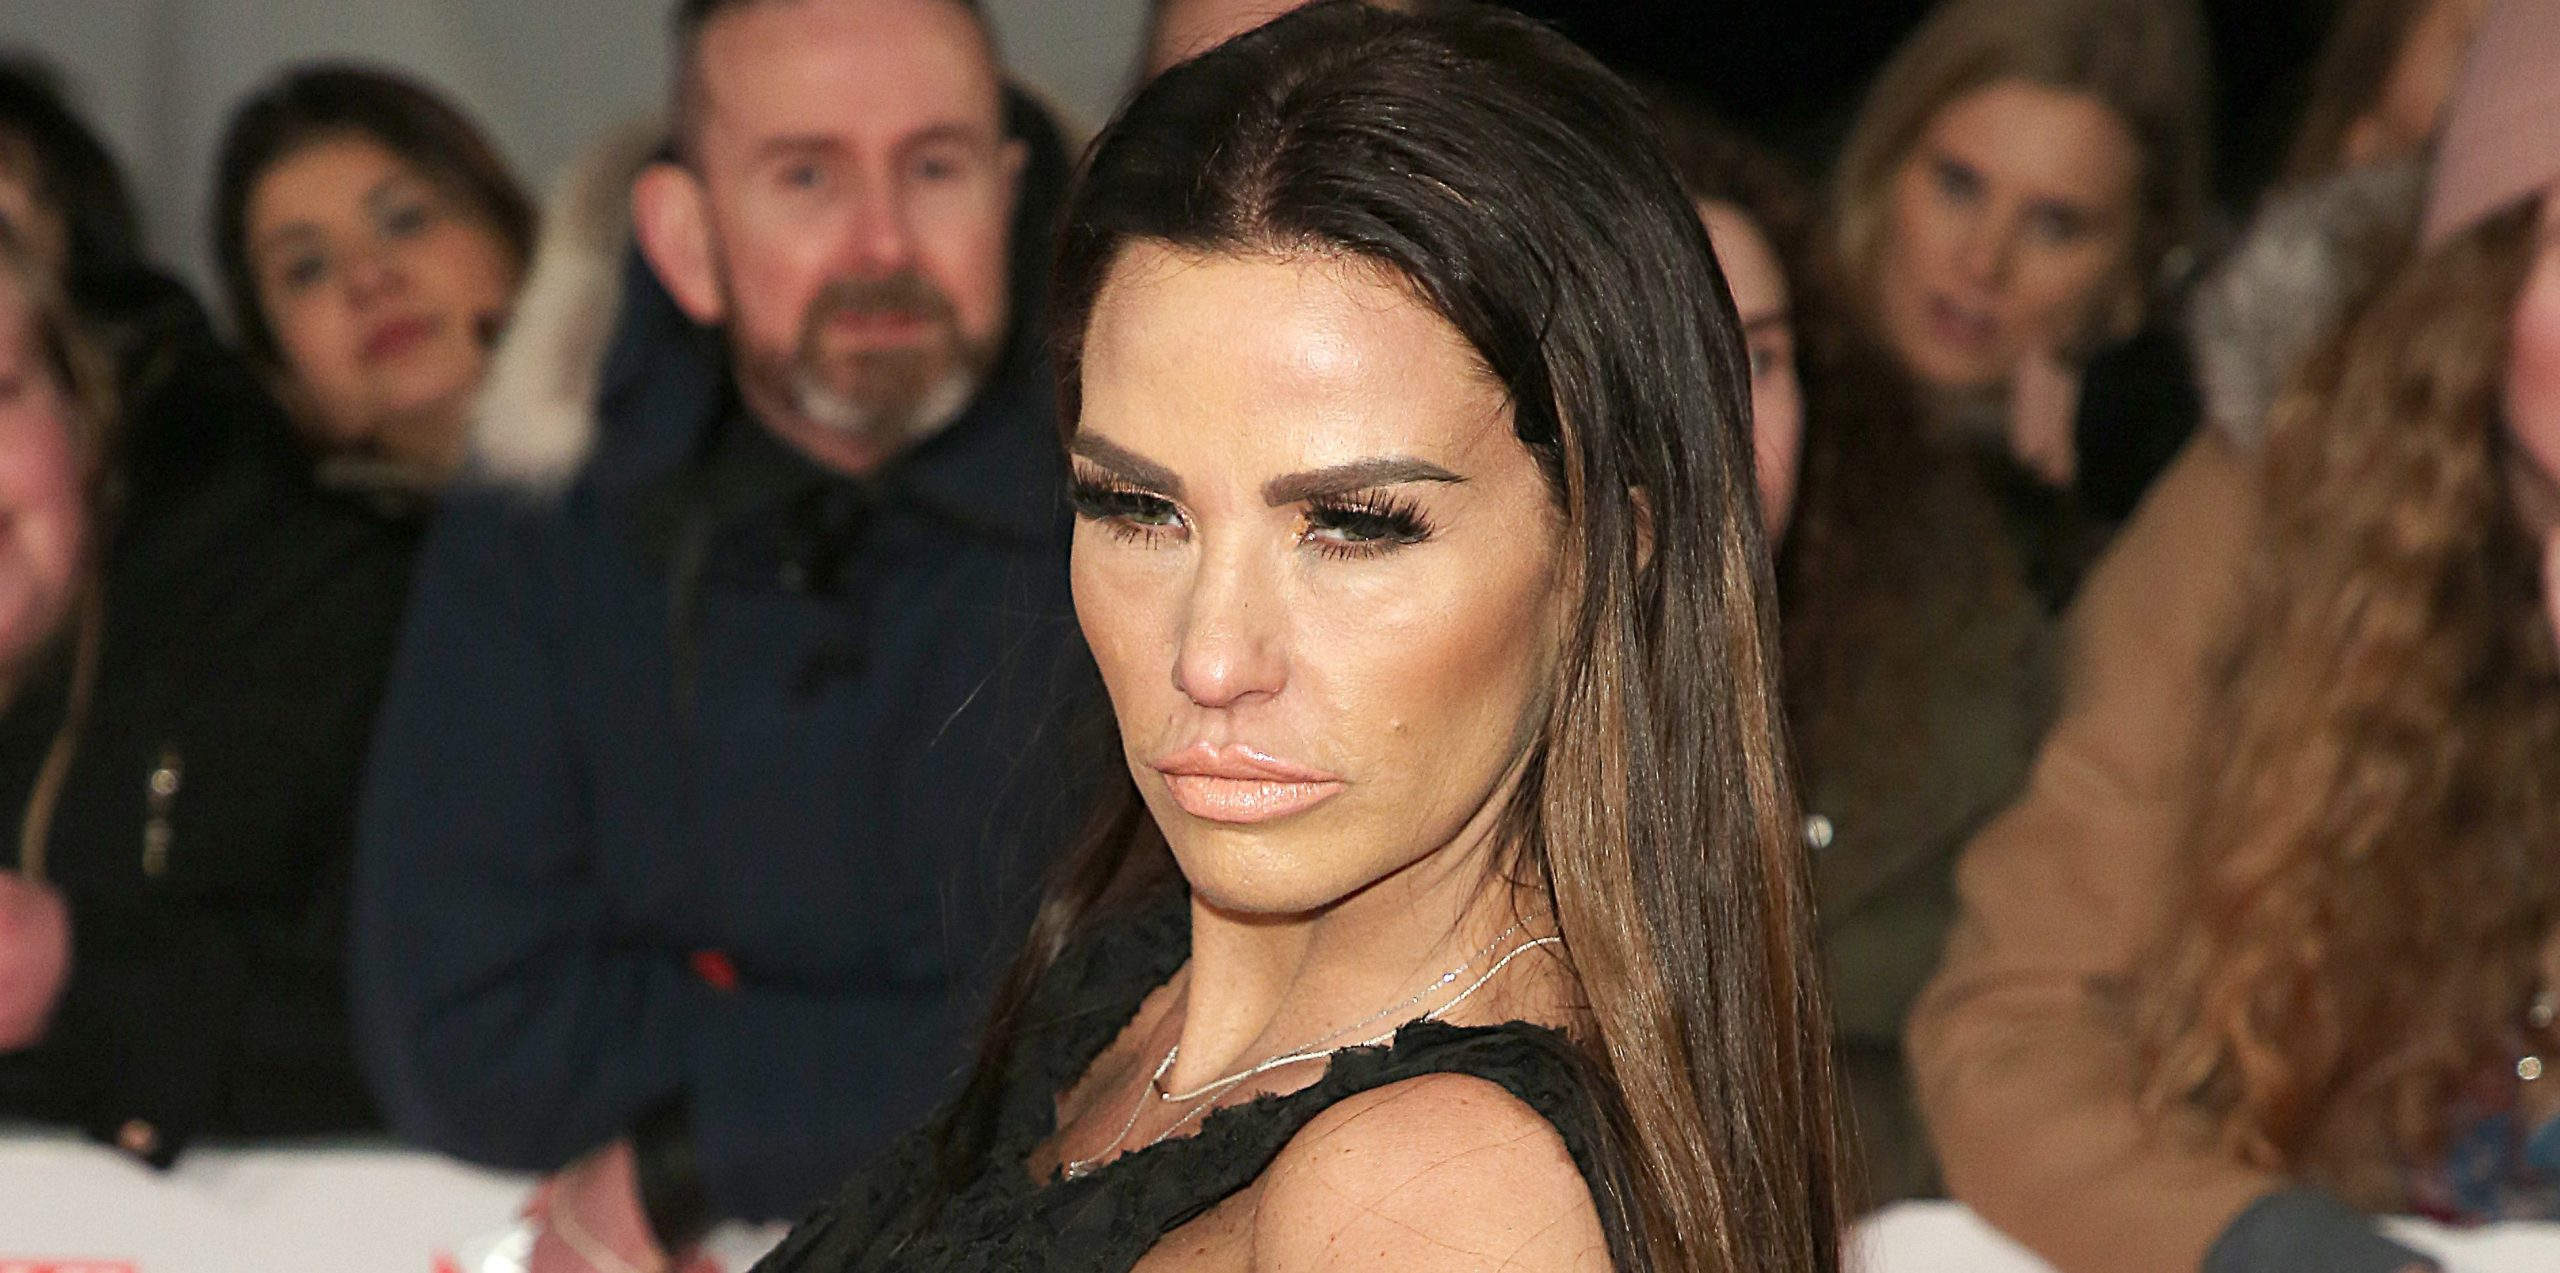 Katie Price reveals her dog Sparkle has died after being hit by car